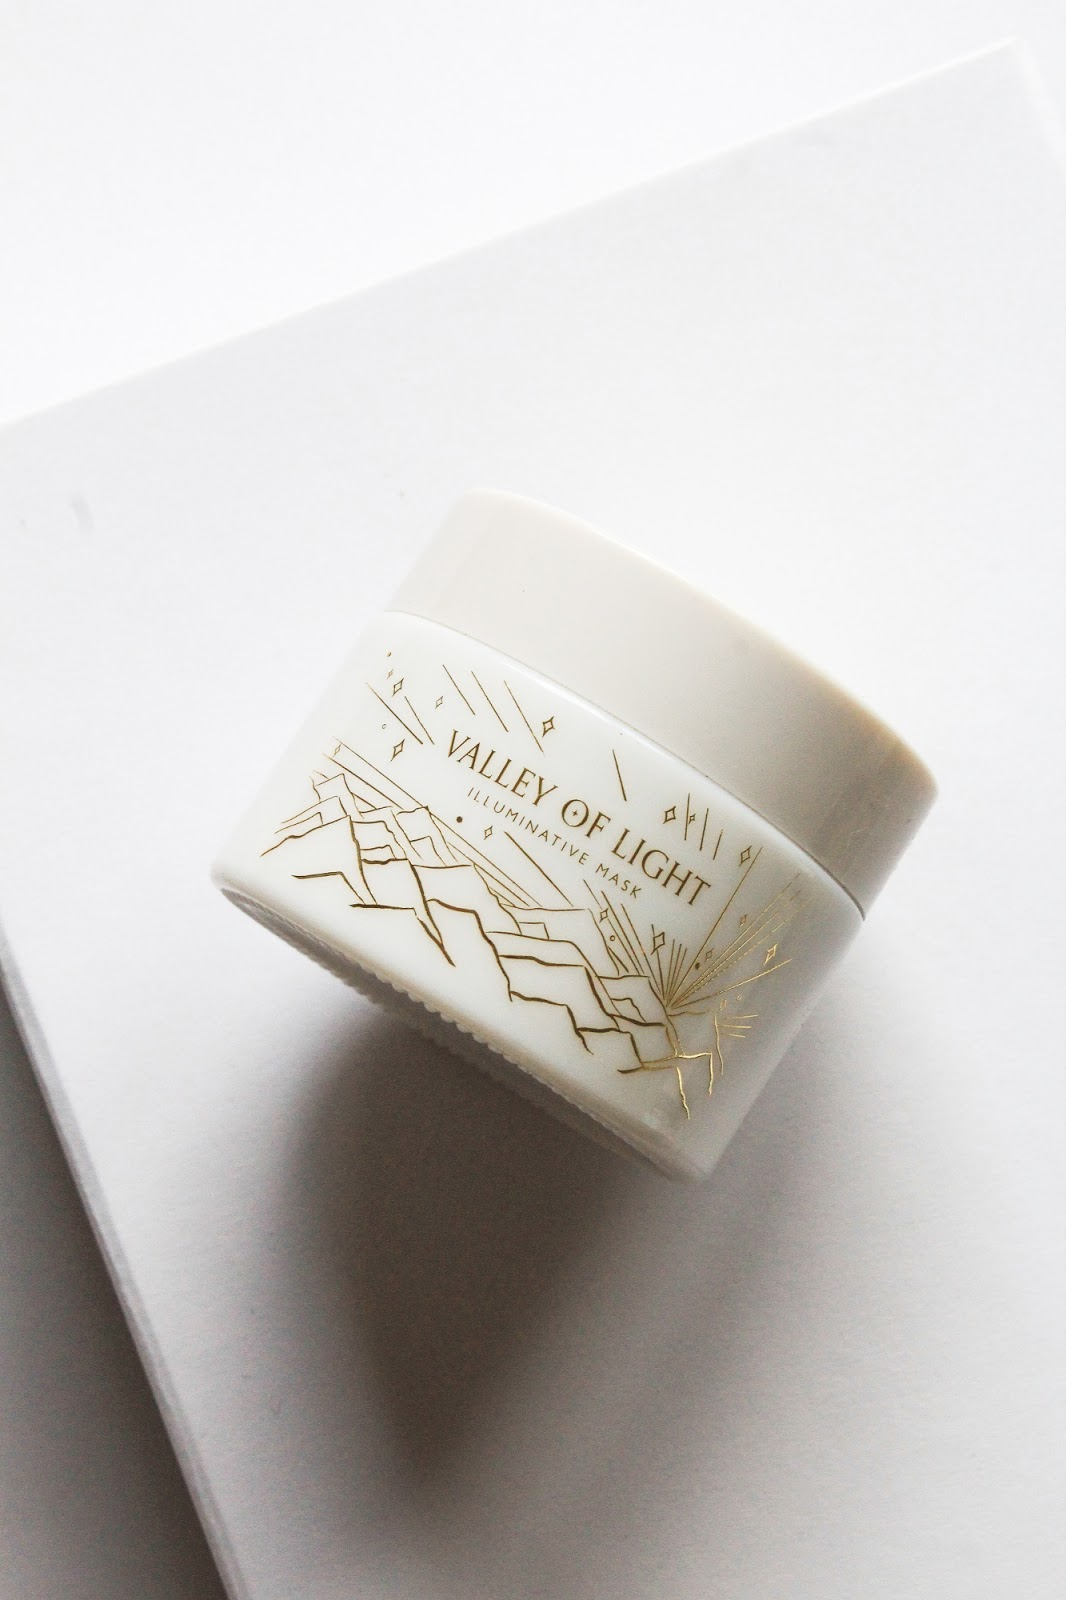 Wabi-Sabi Botanicals Indie Beauty Spotlight Discovery Limited Edition Beauty Heroes Valley of Light Illuminative Mask